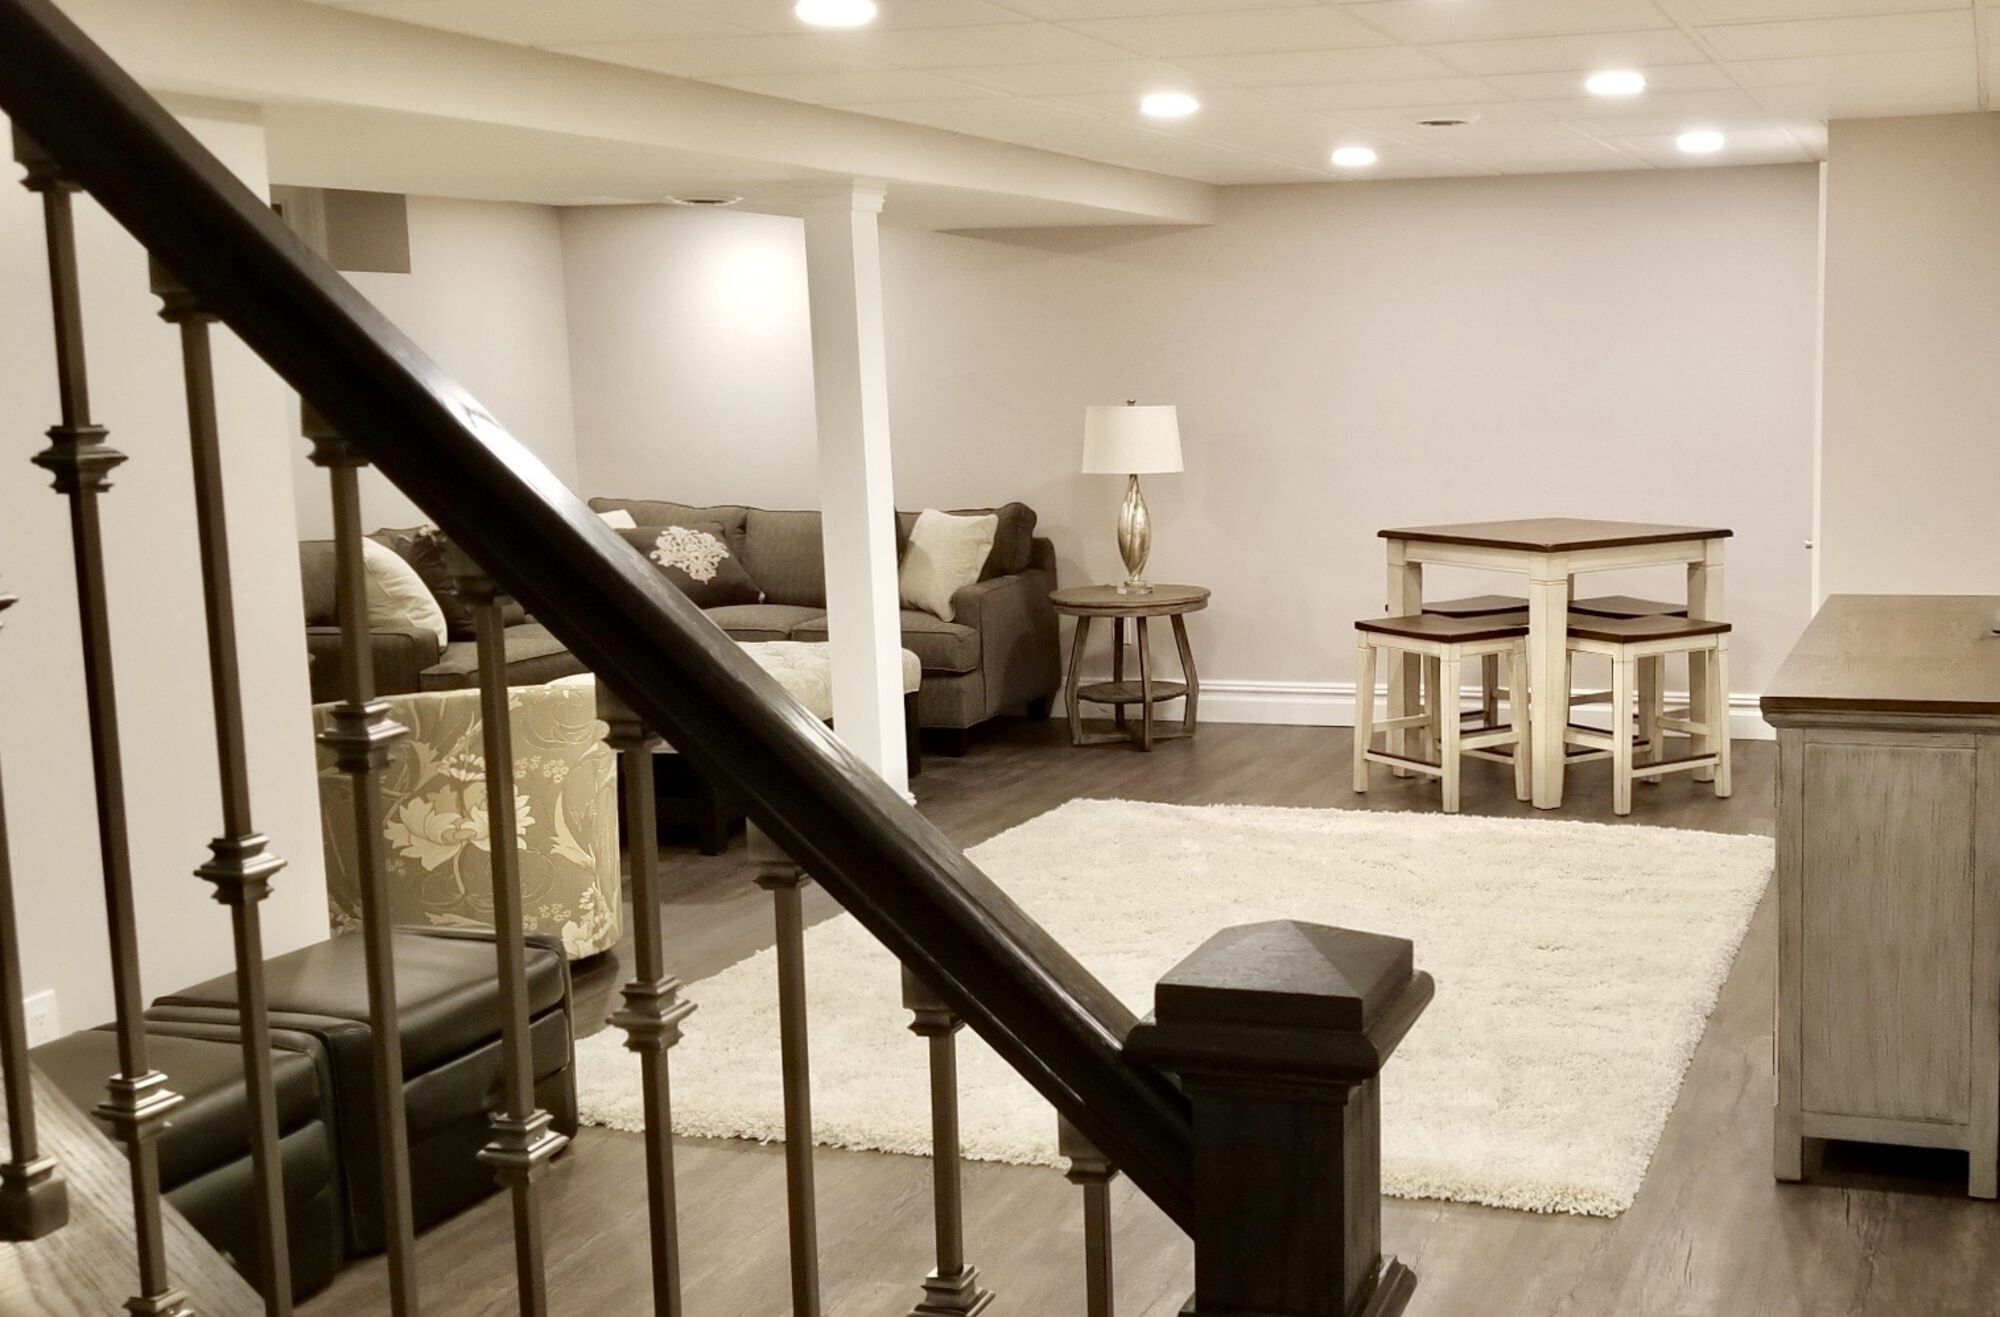 Finished Basement with Full Bath, Dropped Ceiling, LED Lighting, Vinyl Flooring and Step Treads, Custom Rail in East Brunswick, Middlesex County NJ